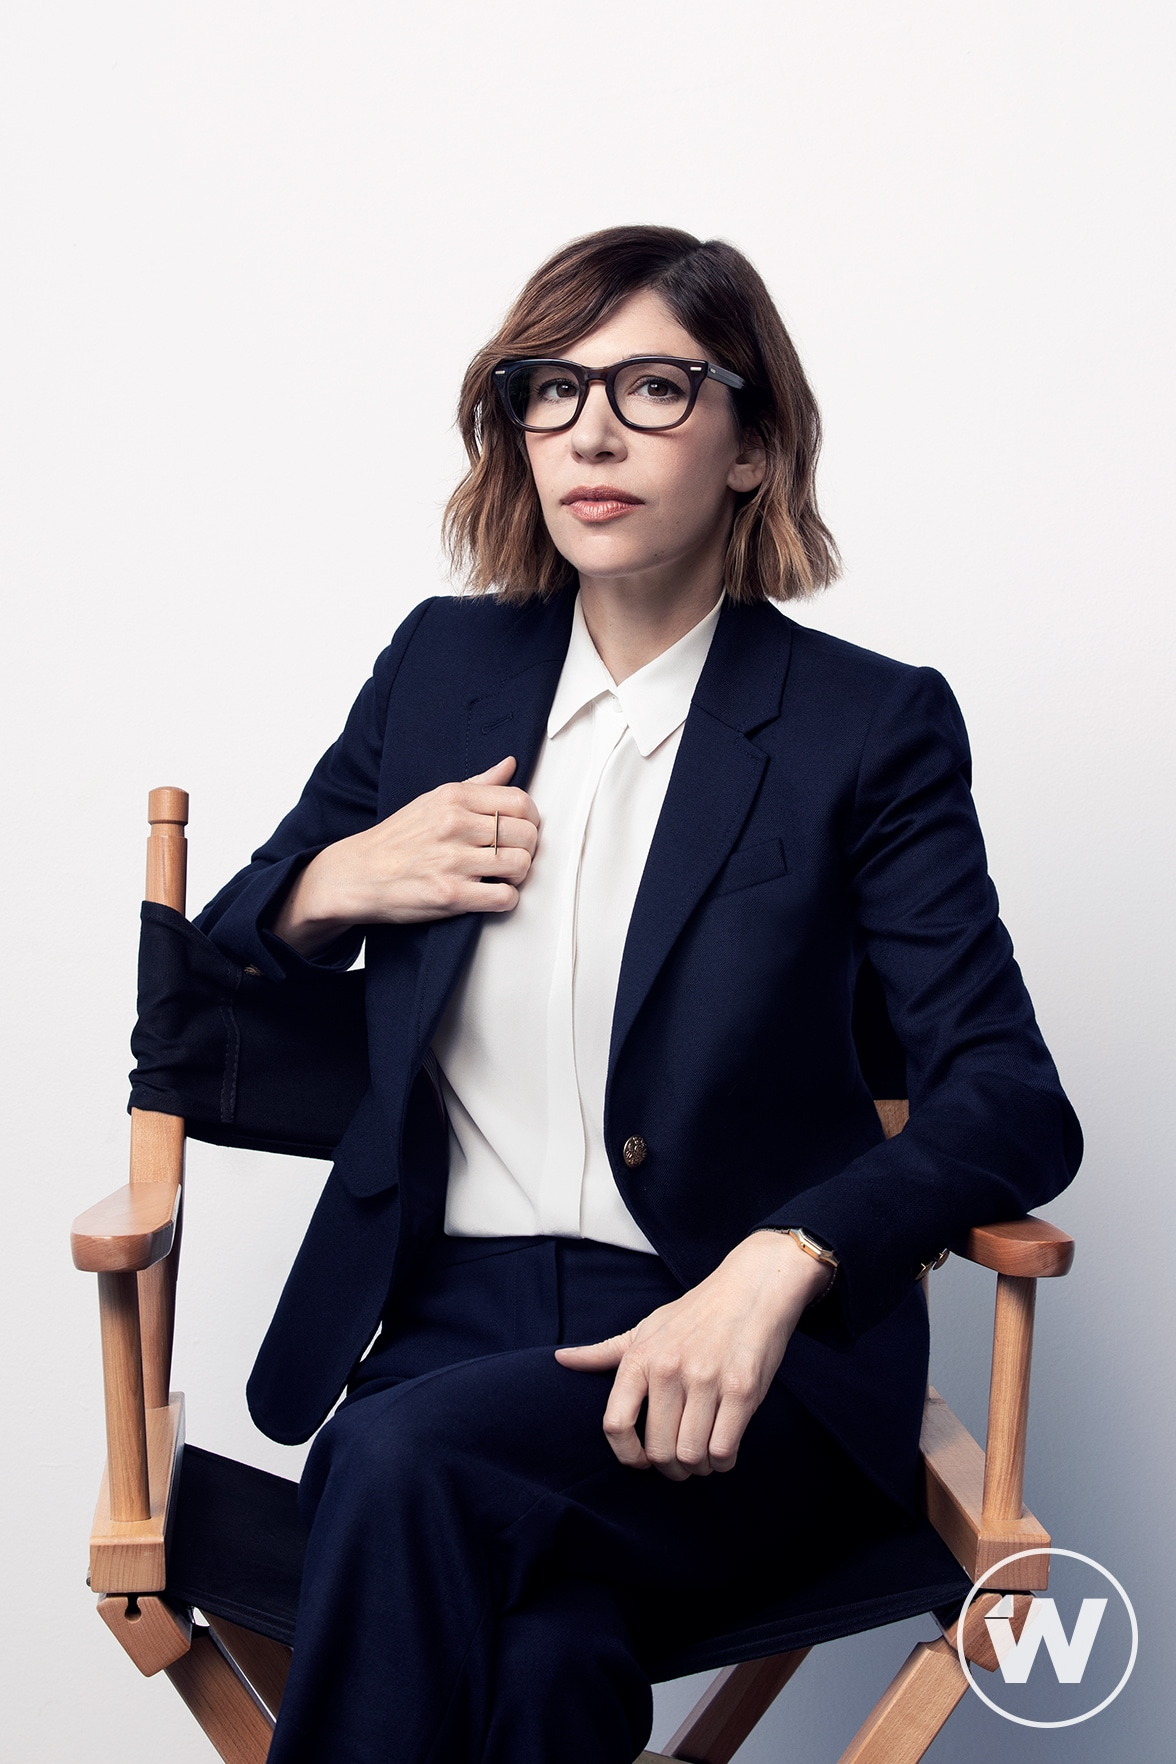 Carrie Brownstein, Portlandia